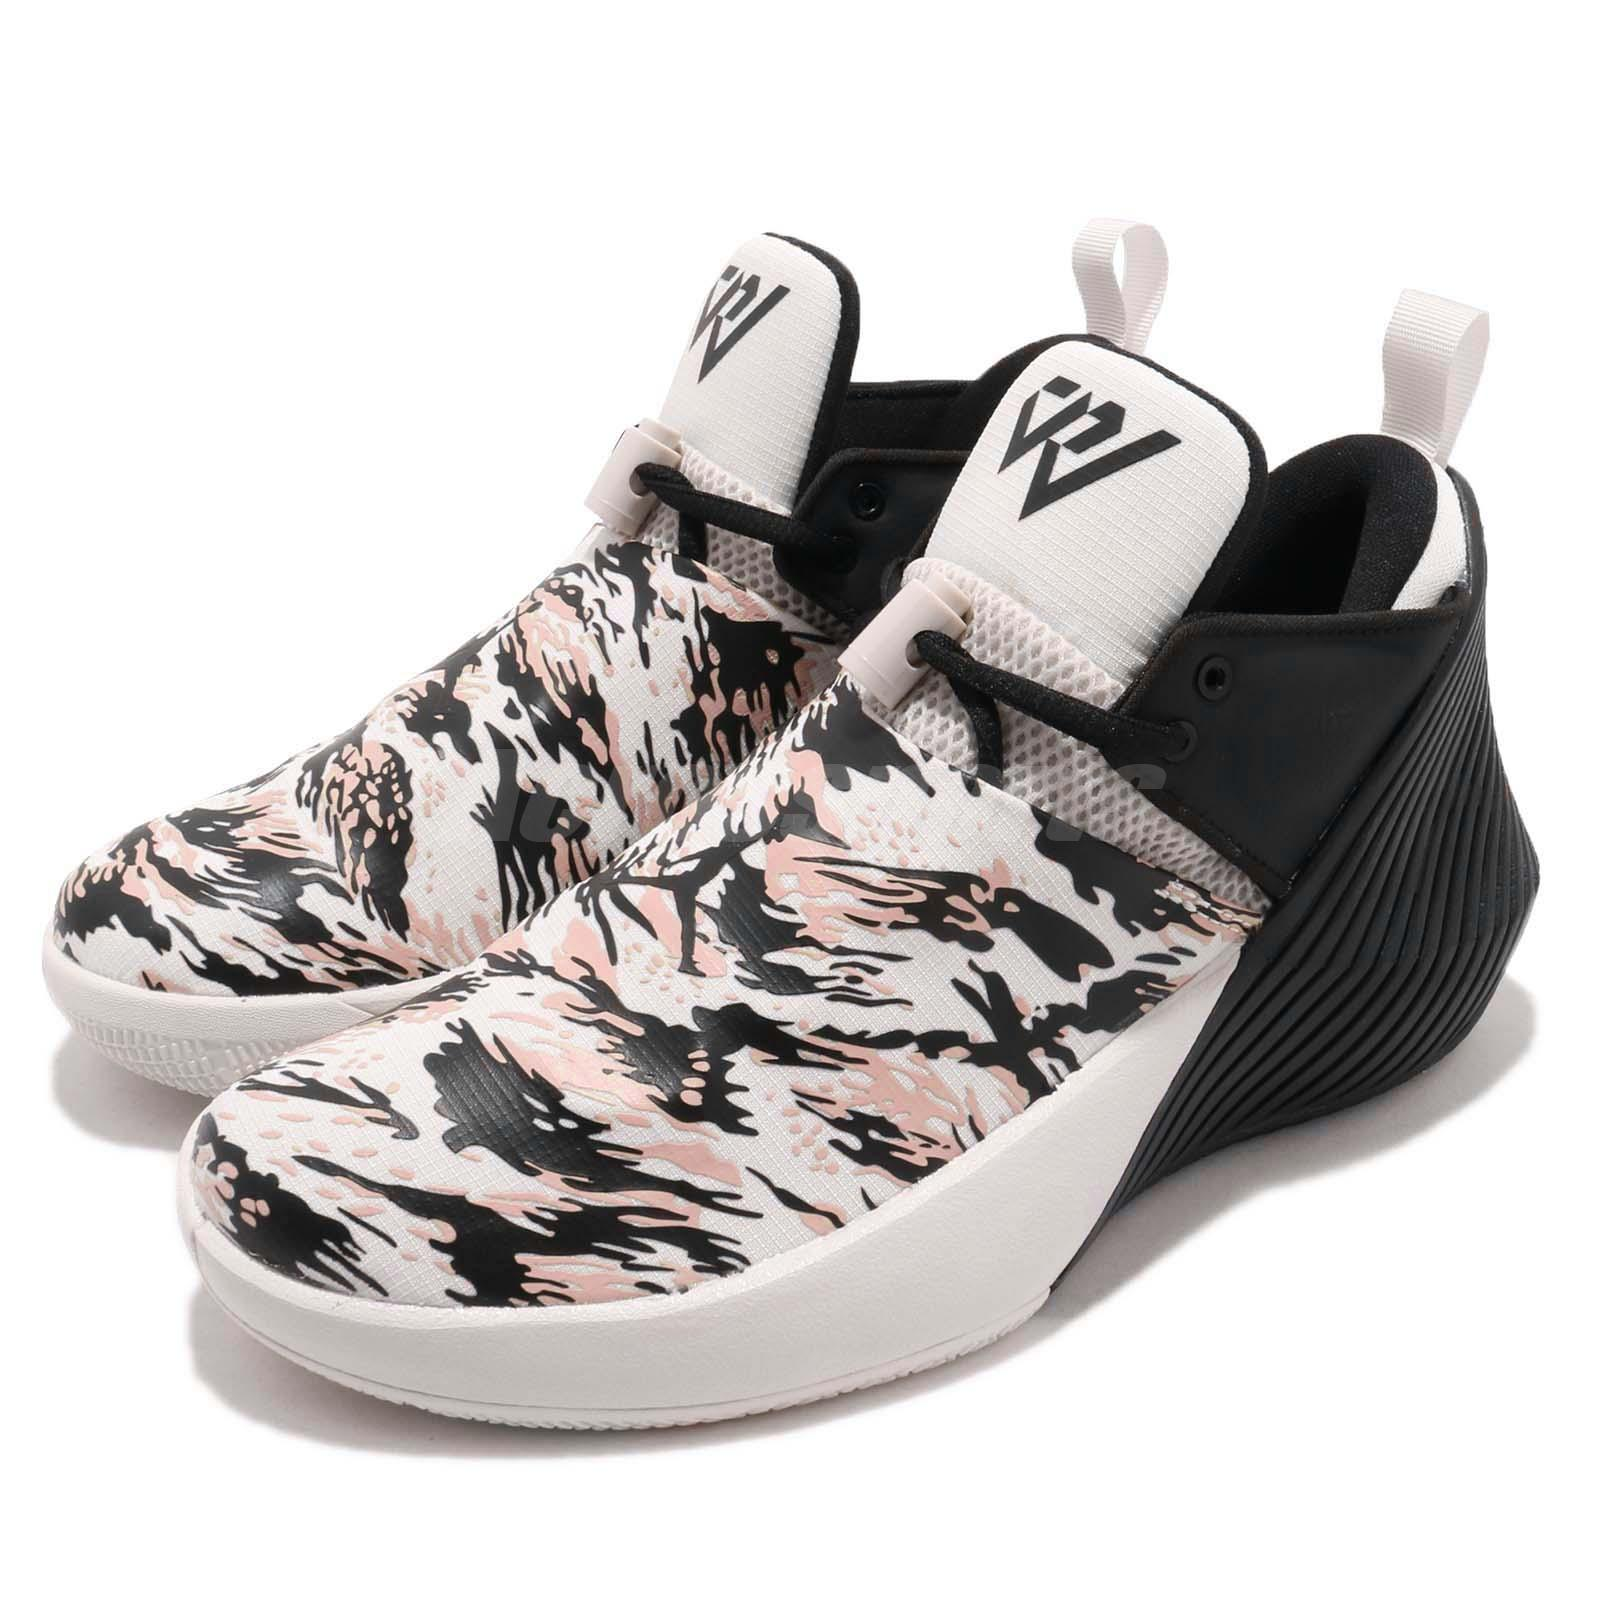 official photos 2677a 54ee7 Details about Nike Jordan Why Not Zer0.1 Low GS Russell Westbrook Pink Kid  Women AO9744-003